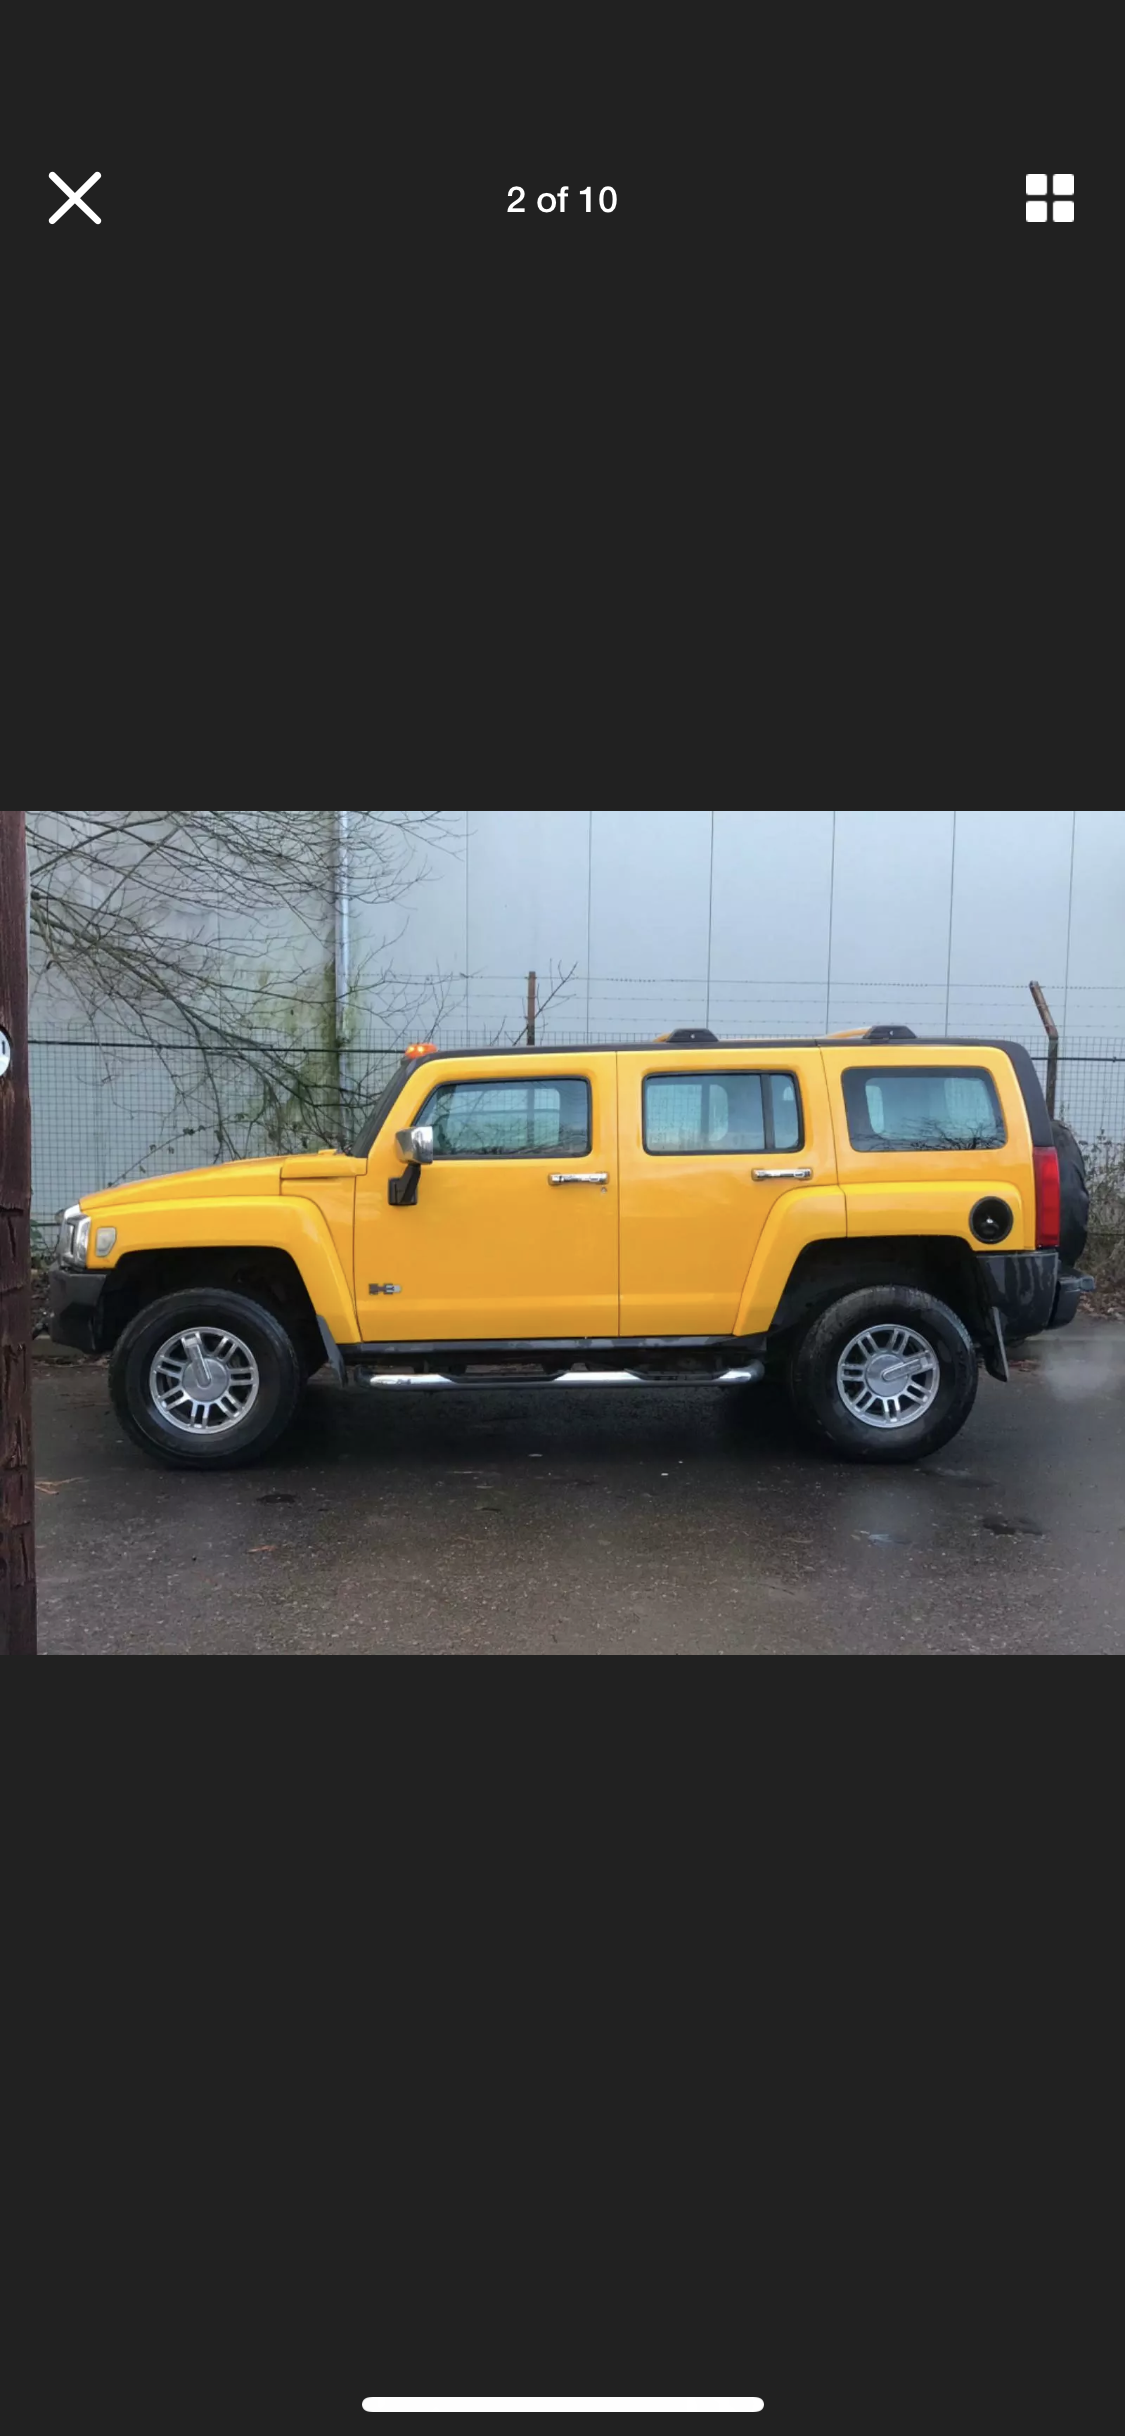 2007 HUMMER H3 3.5 LEFT HAND DRIVE YELLOW MODIFIED IMPORT For Sale (picture 3 of 6)